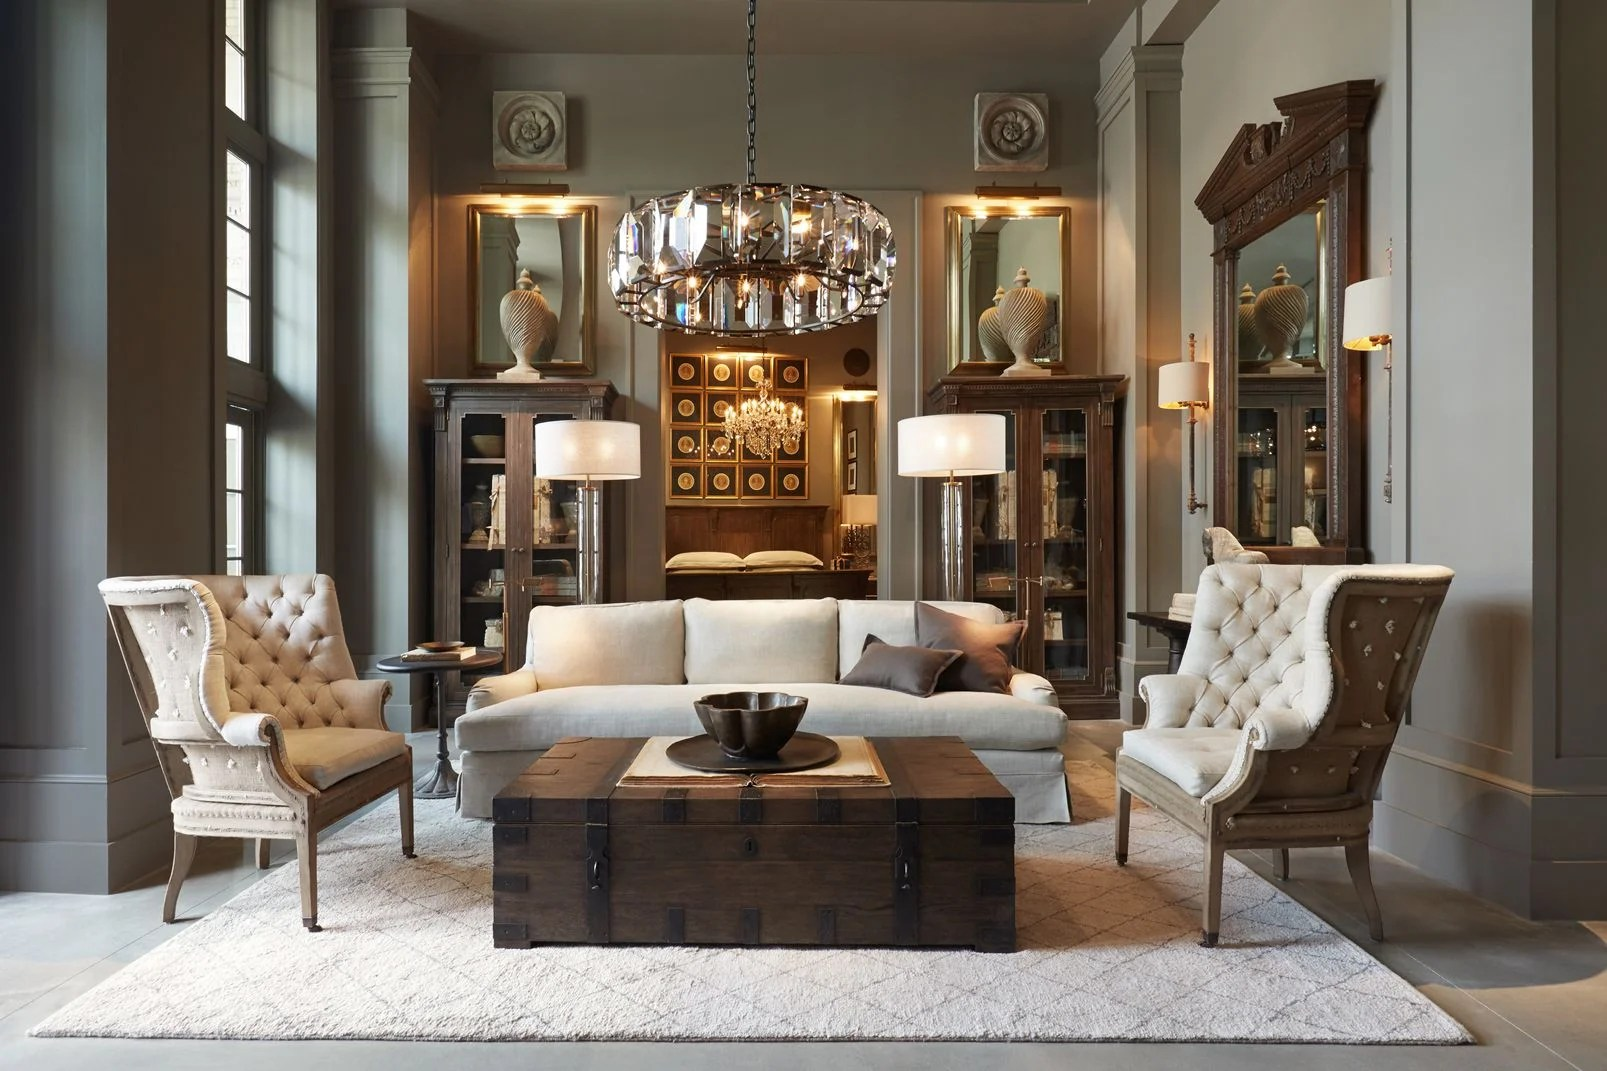 Why Restoration Hardware Holdings Stock Plunged Today